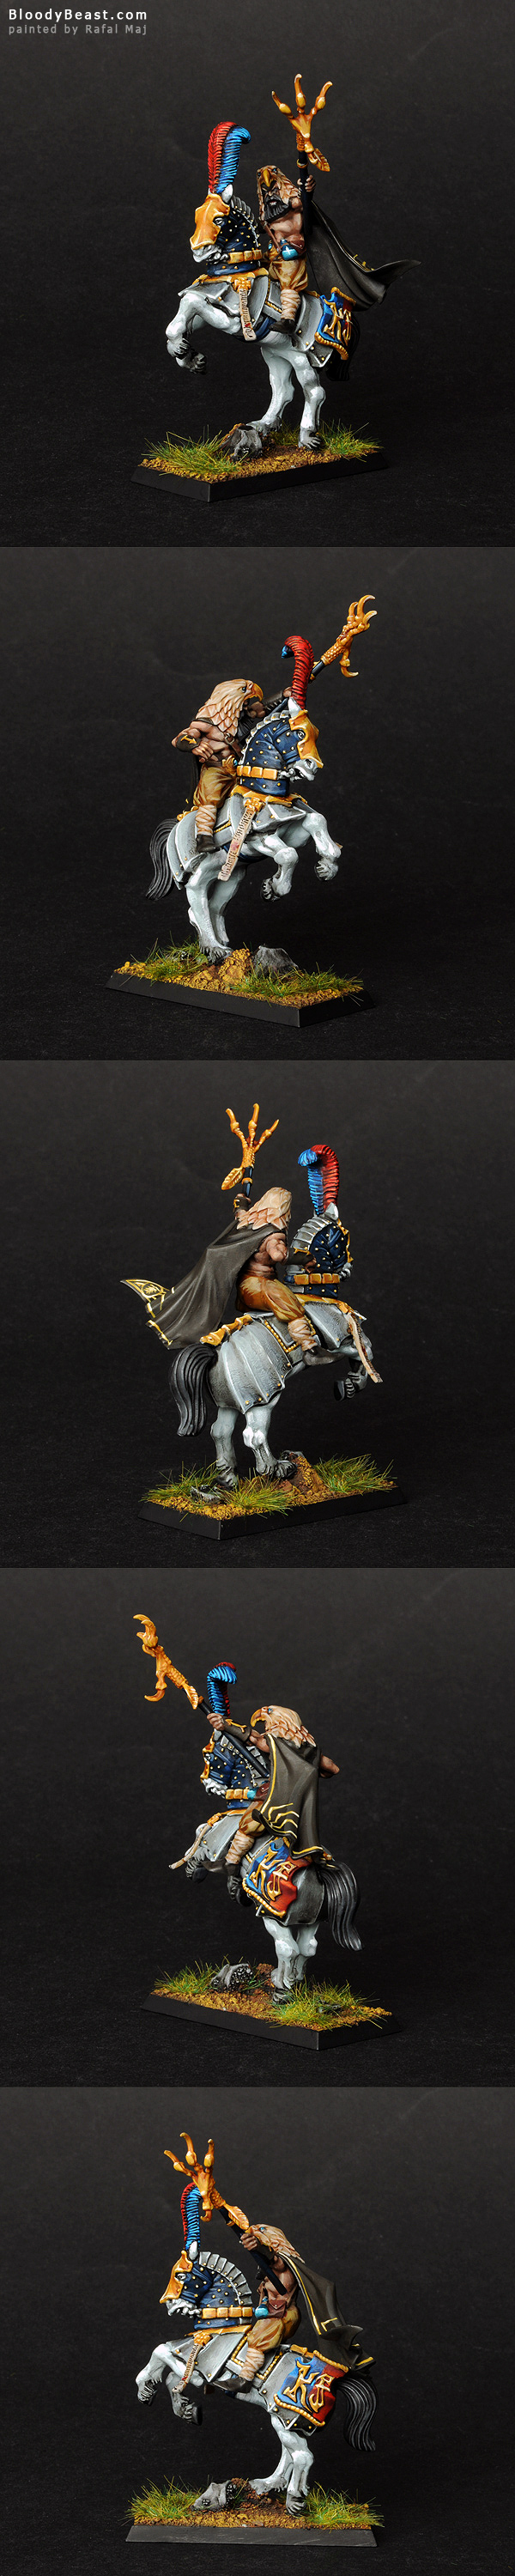 Empire Amber Battle Wizard on Horse painted by Rafal Maj (BloodyBeast.com)